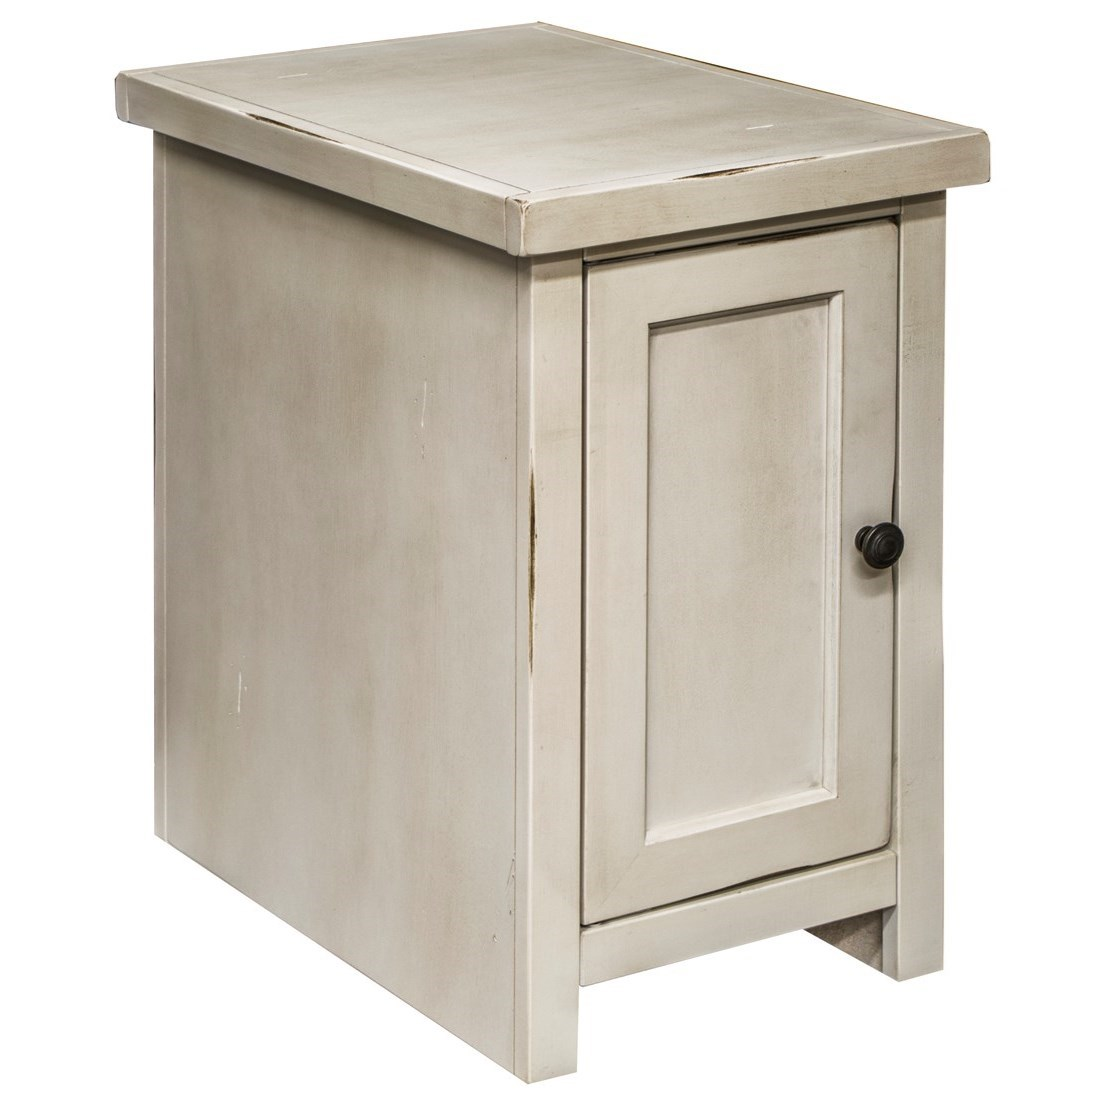 Legends Furniture Calistoga Collection Calistoga Chair Table - Item Number: CA4540-RWT